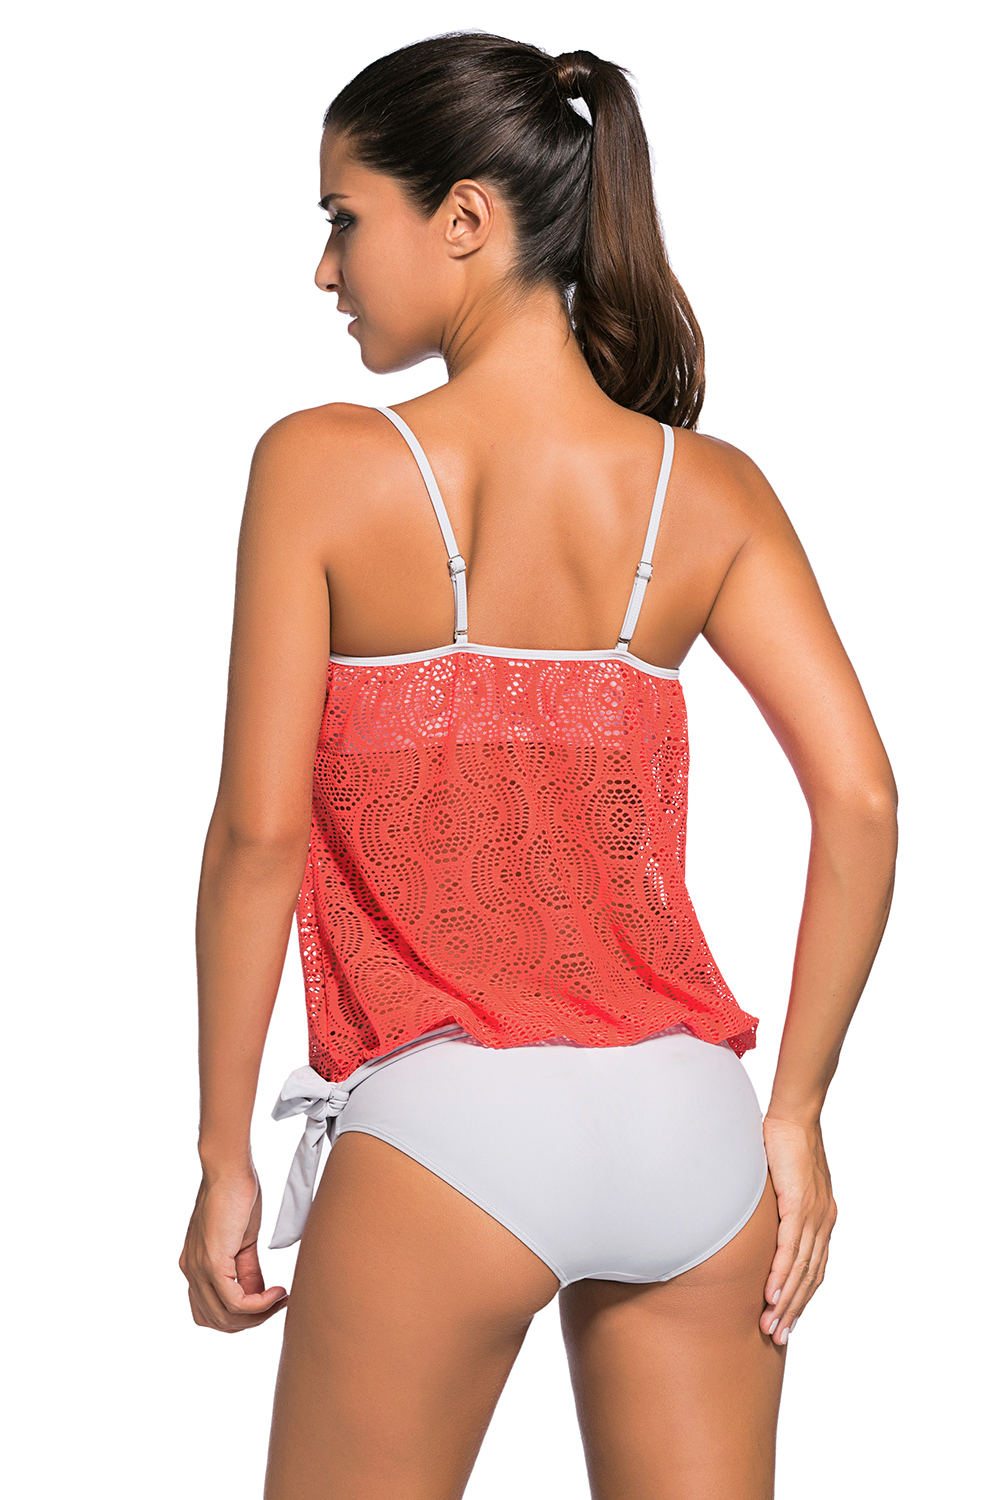 BY41917-14 Orange Lace Overly 2pcs Bandeau Tankini Swimsuit